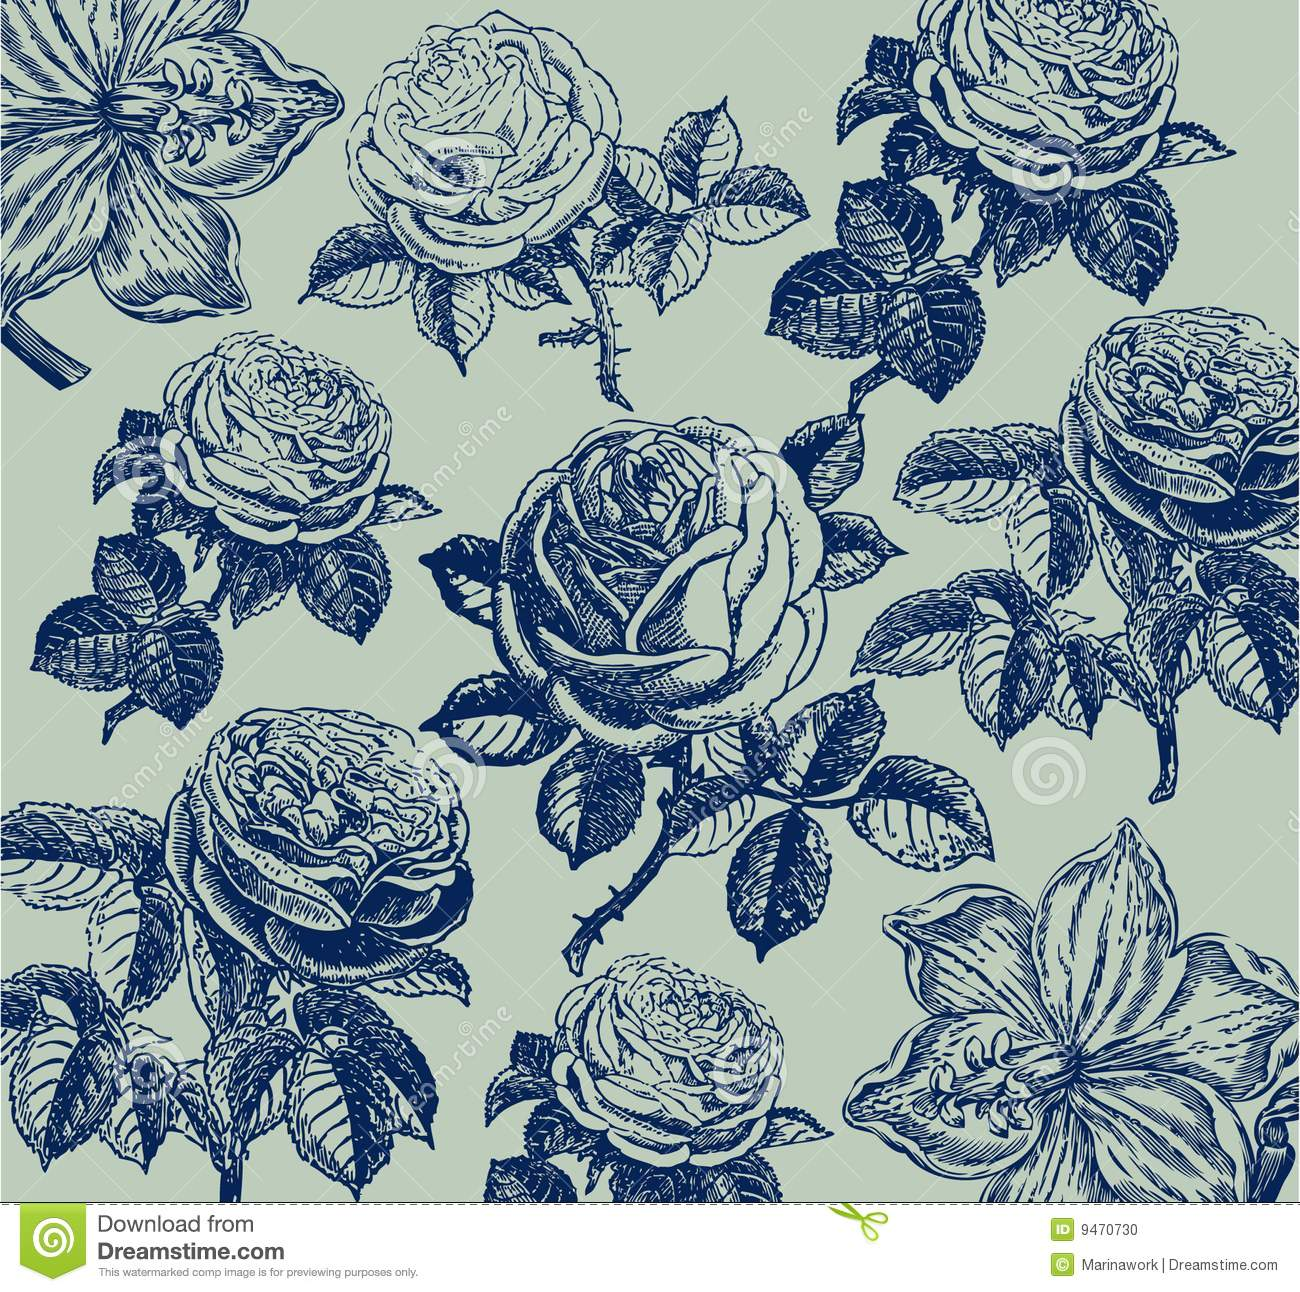 Classical wall-paper with a flower pattern.